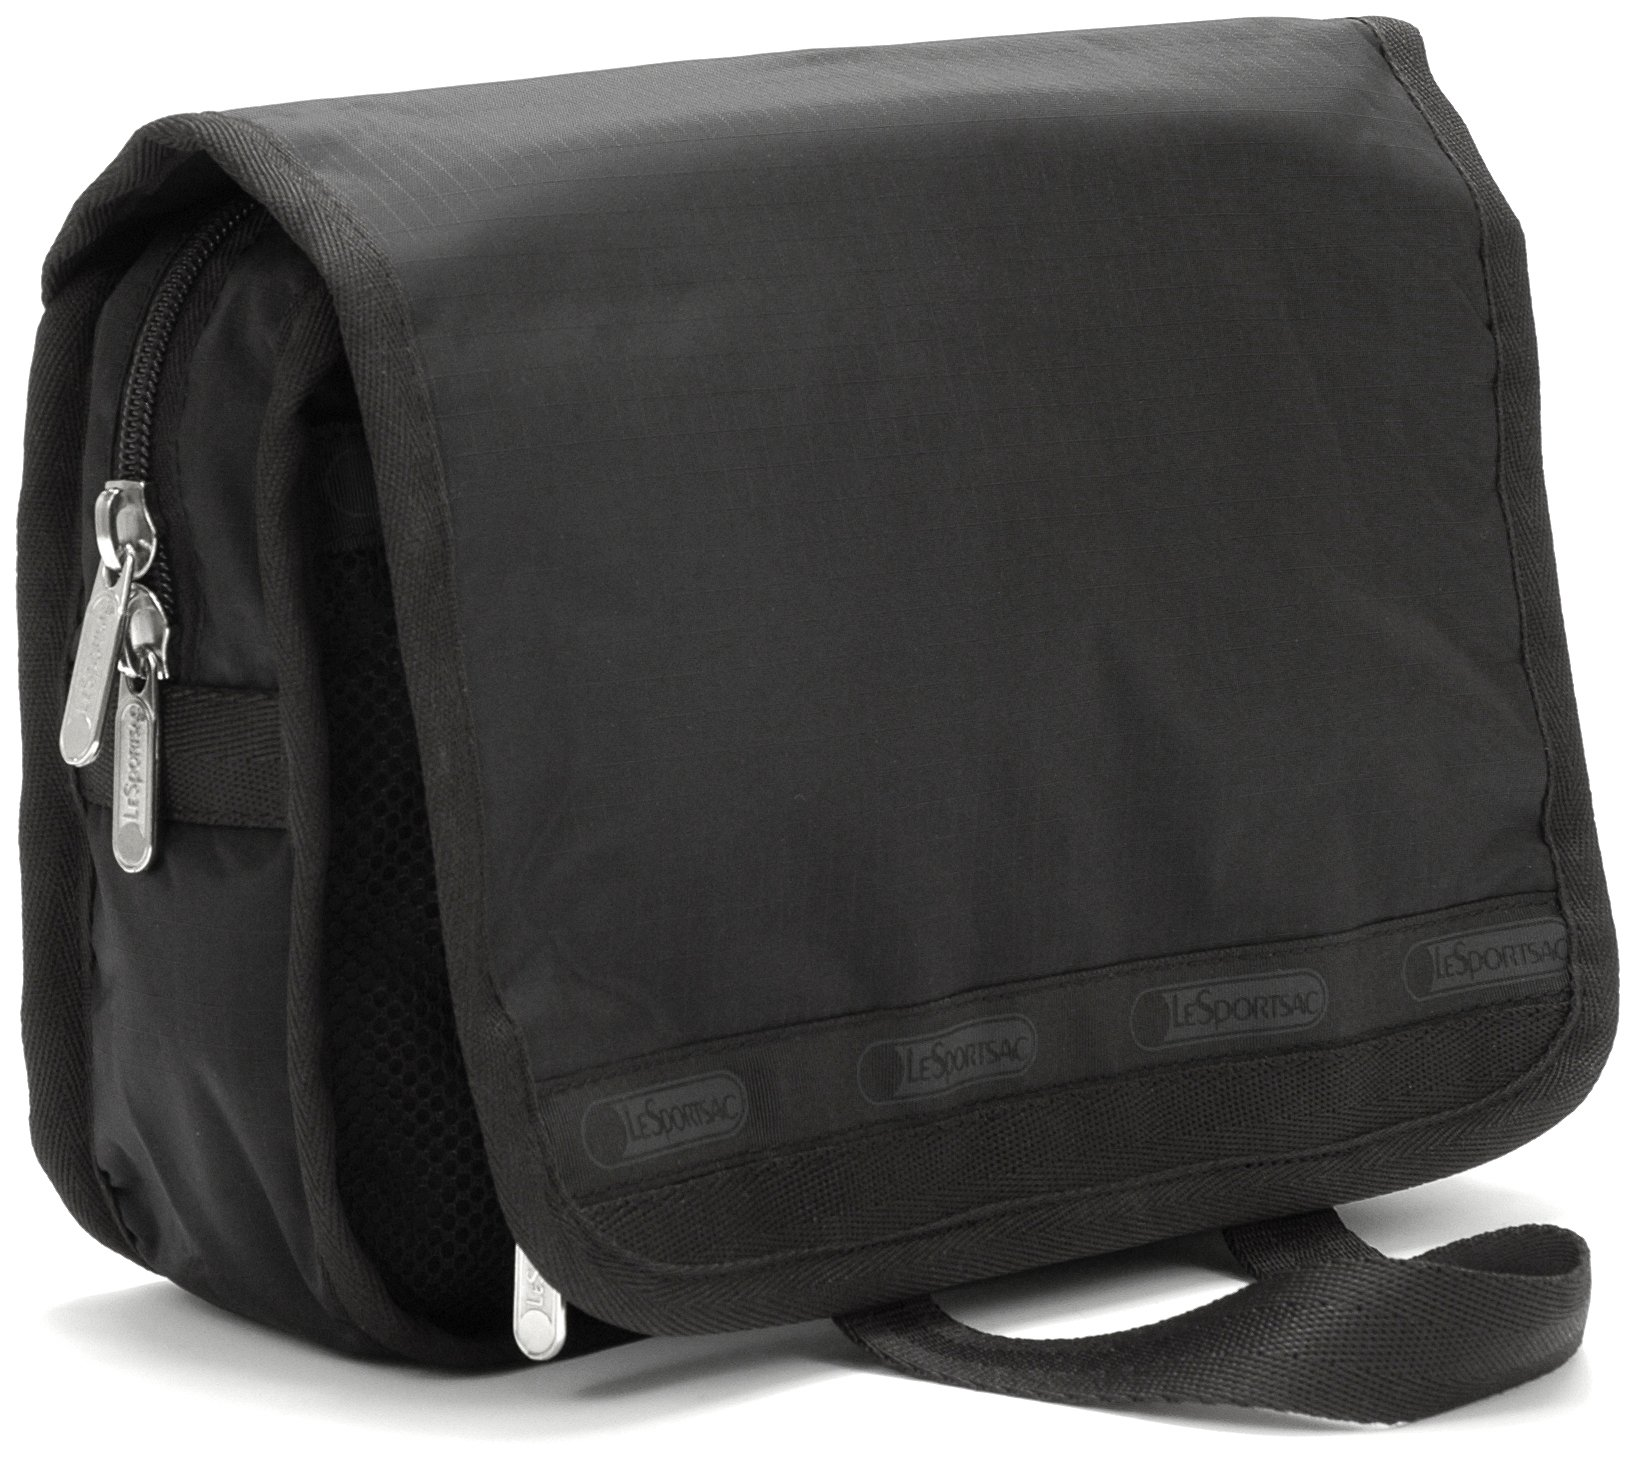 LeSportsac Handle Style Cosmetic Case,Black,One Size by LeSportsac